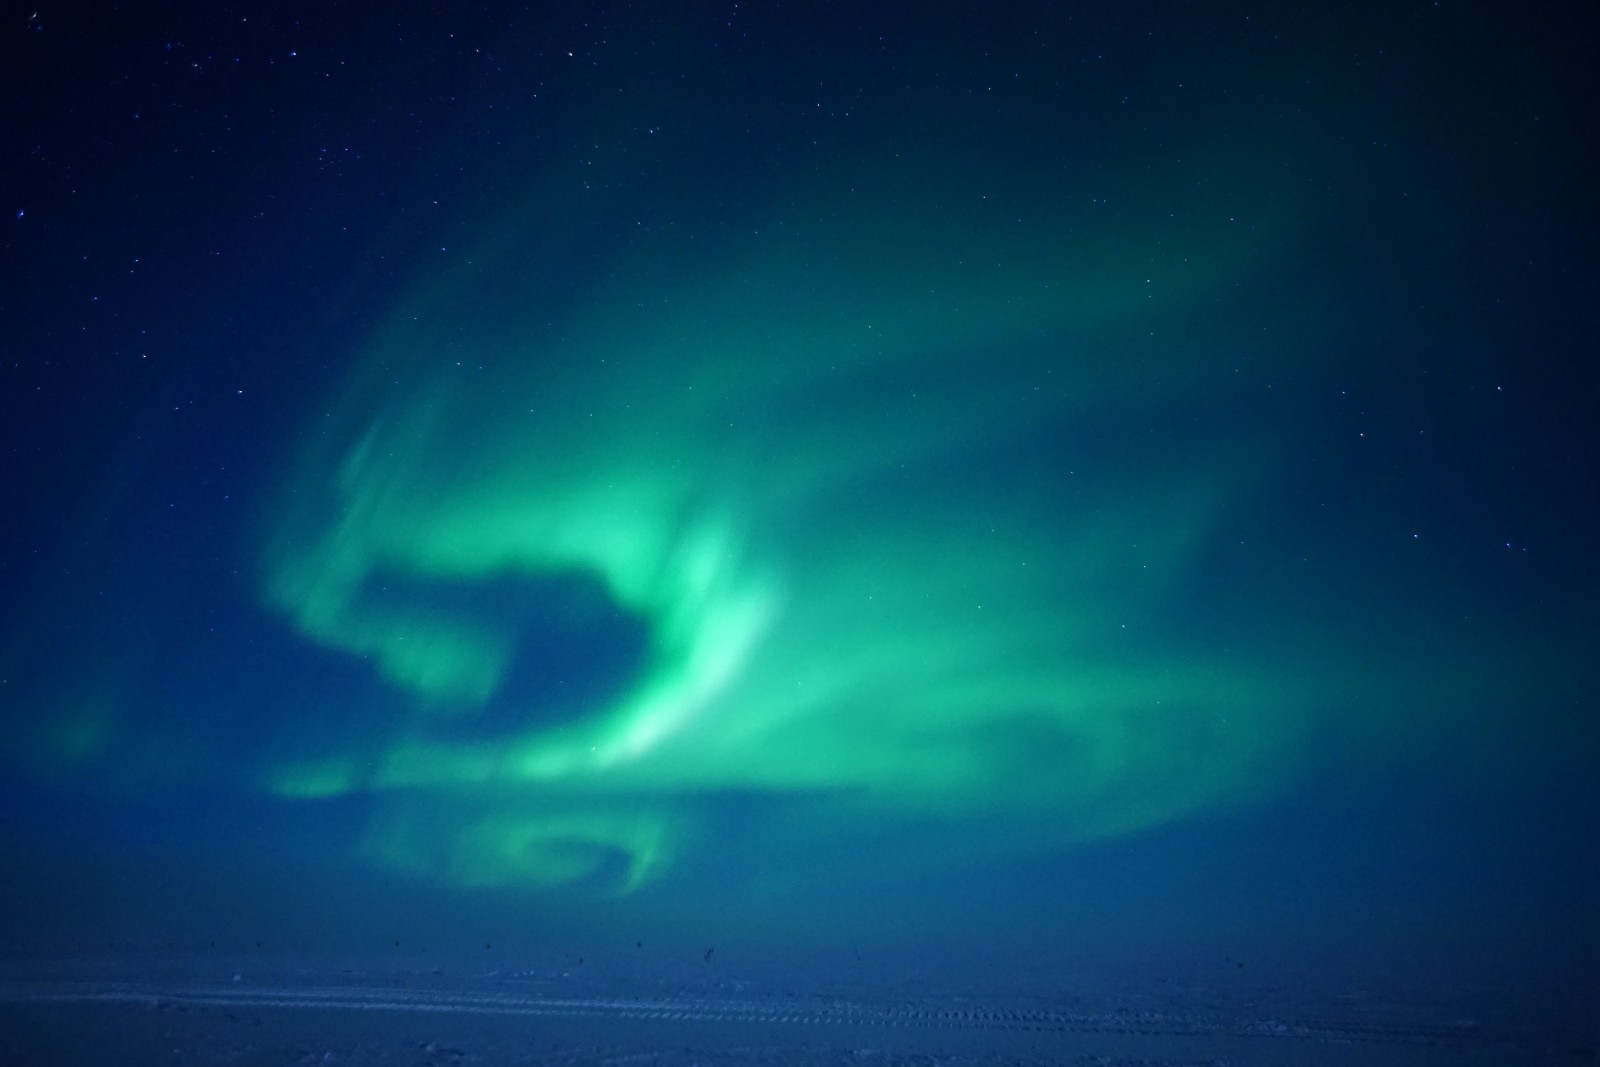 Cryospheric sciences antarctica one of many auroras from the south pole credit max peters publicscrutiny Images